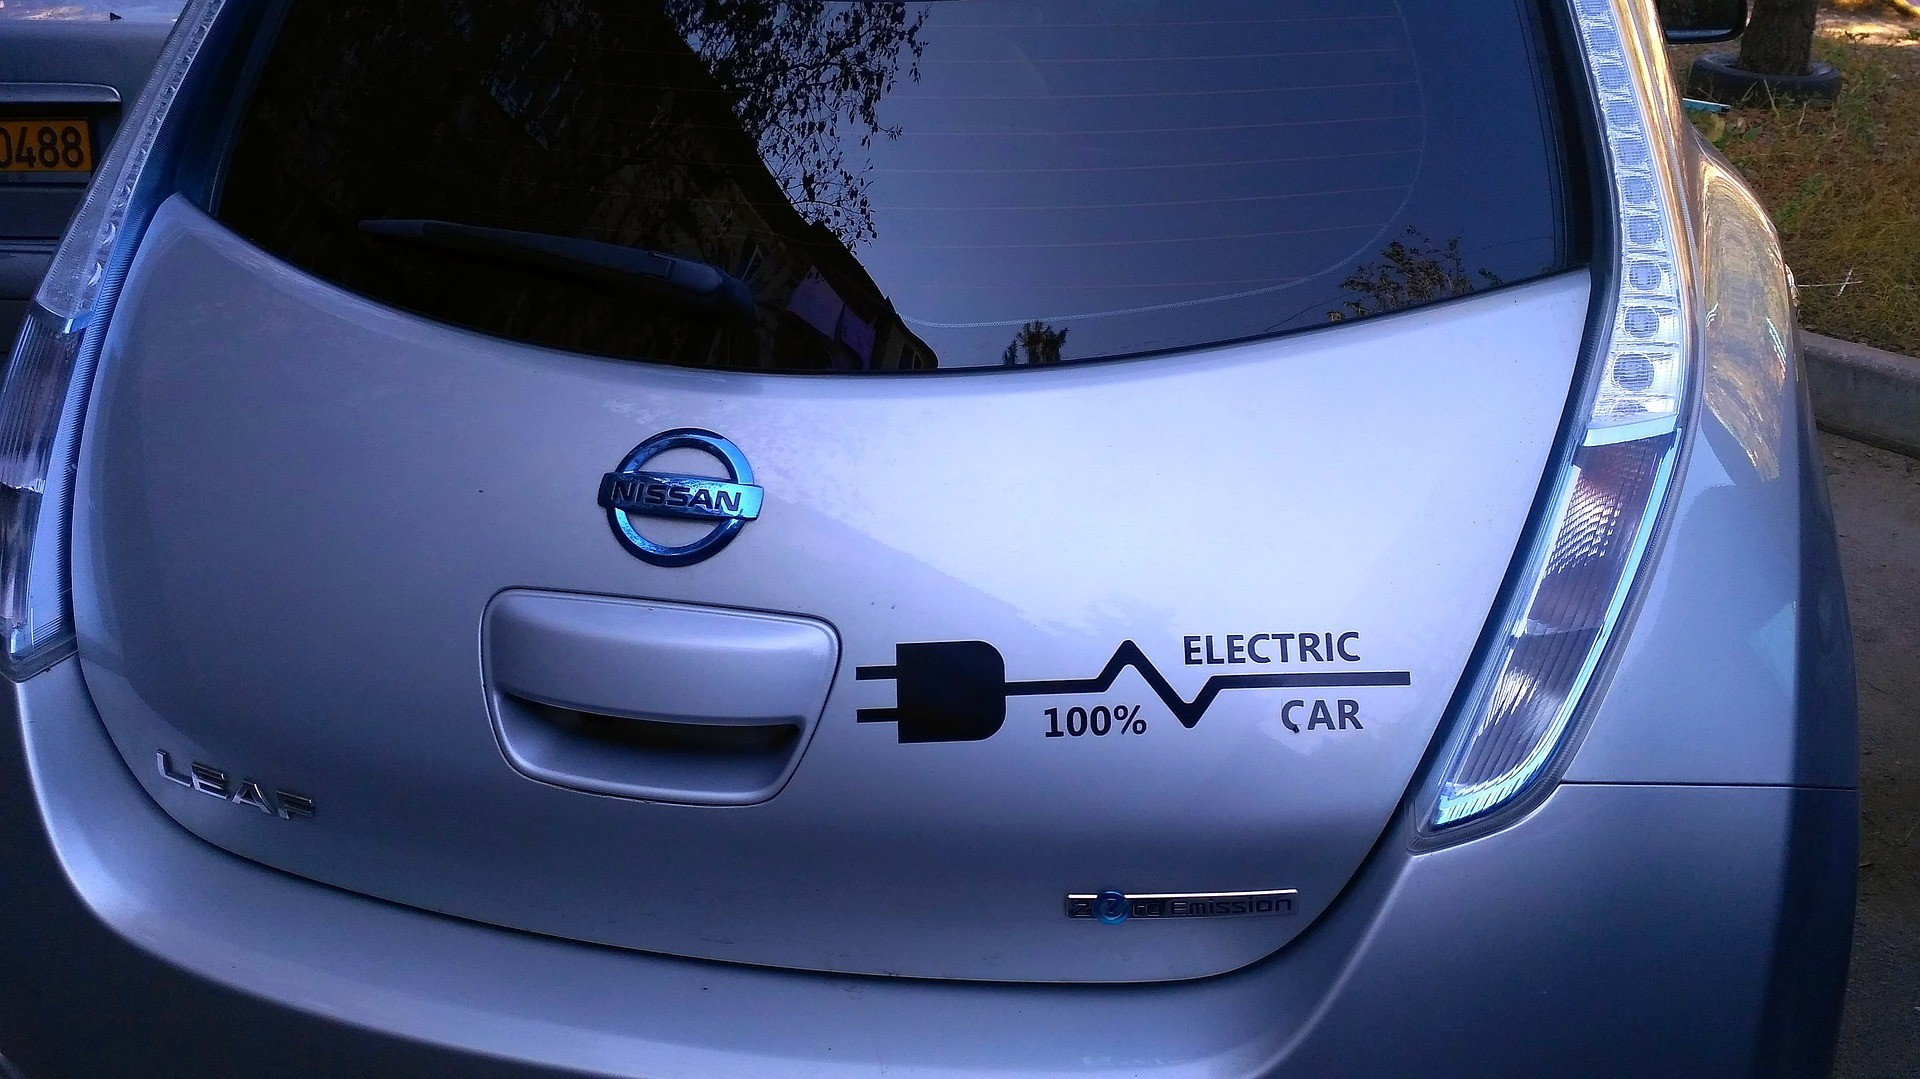 10 Electric Car Maintenance Tips: Extend the Life of Your Electrical Vehicle!